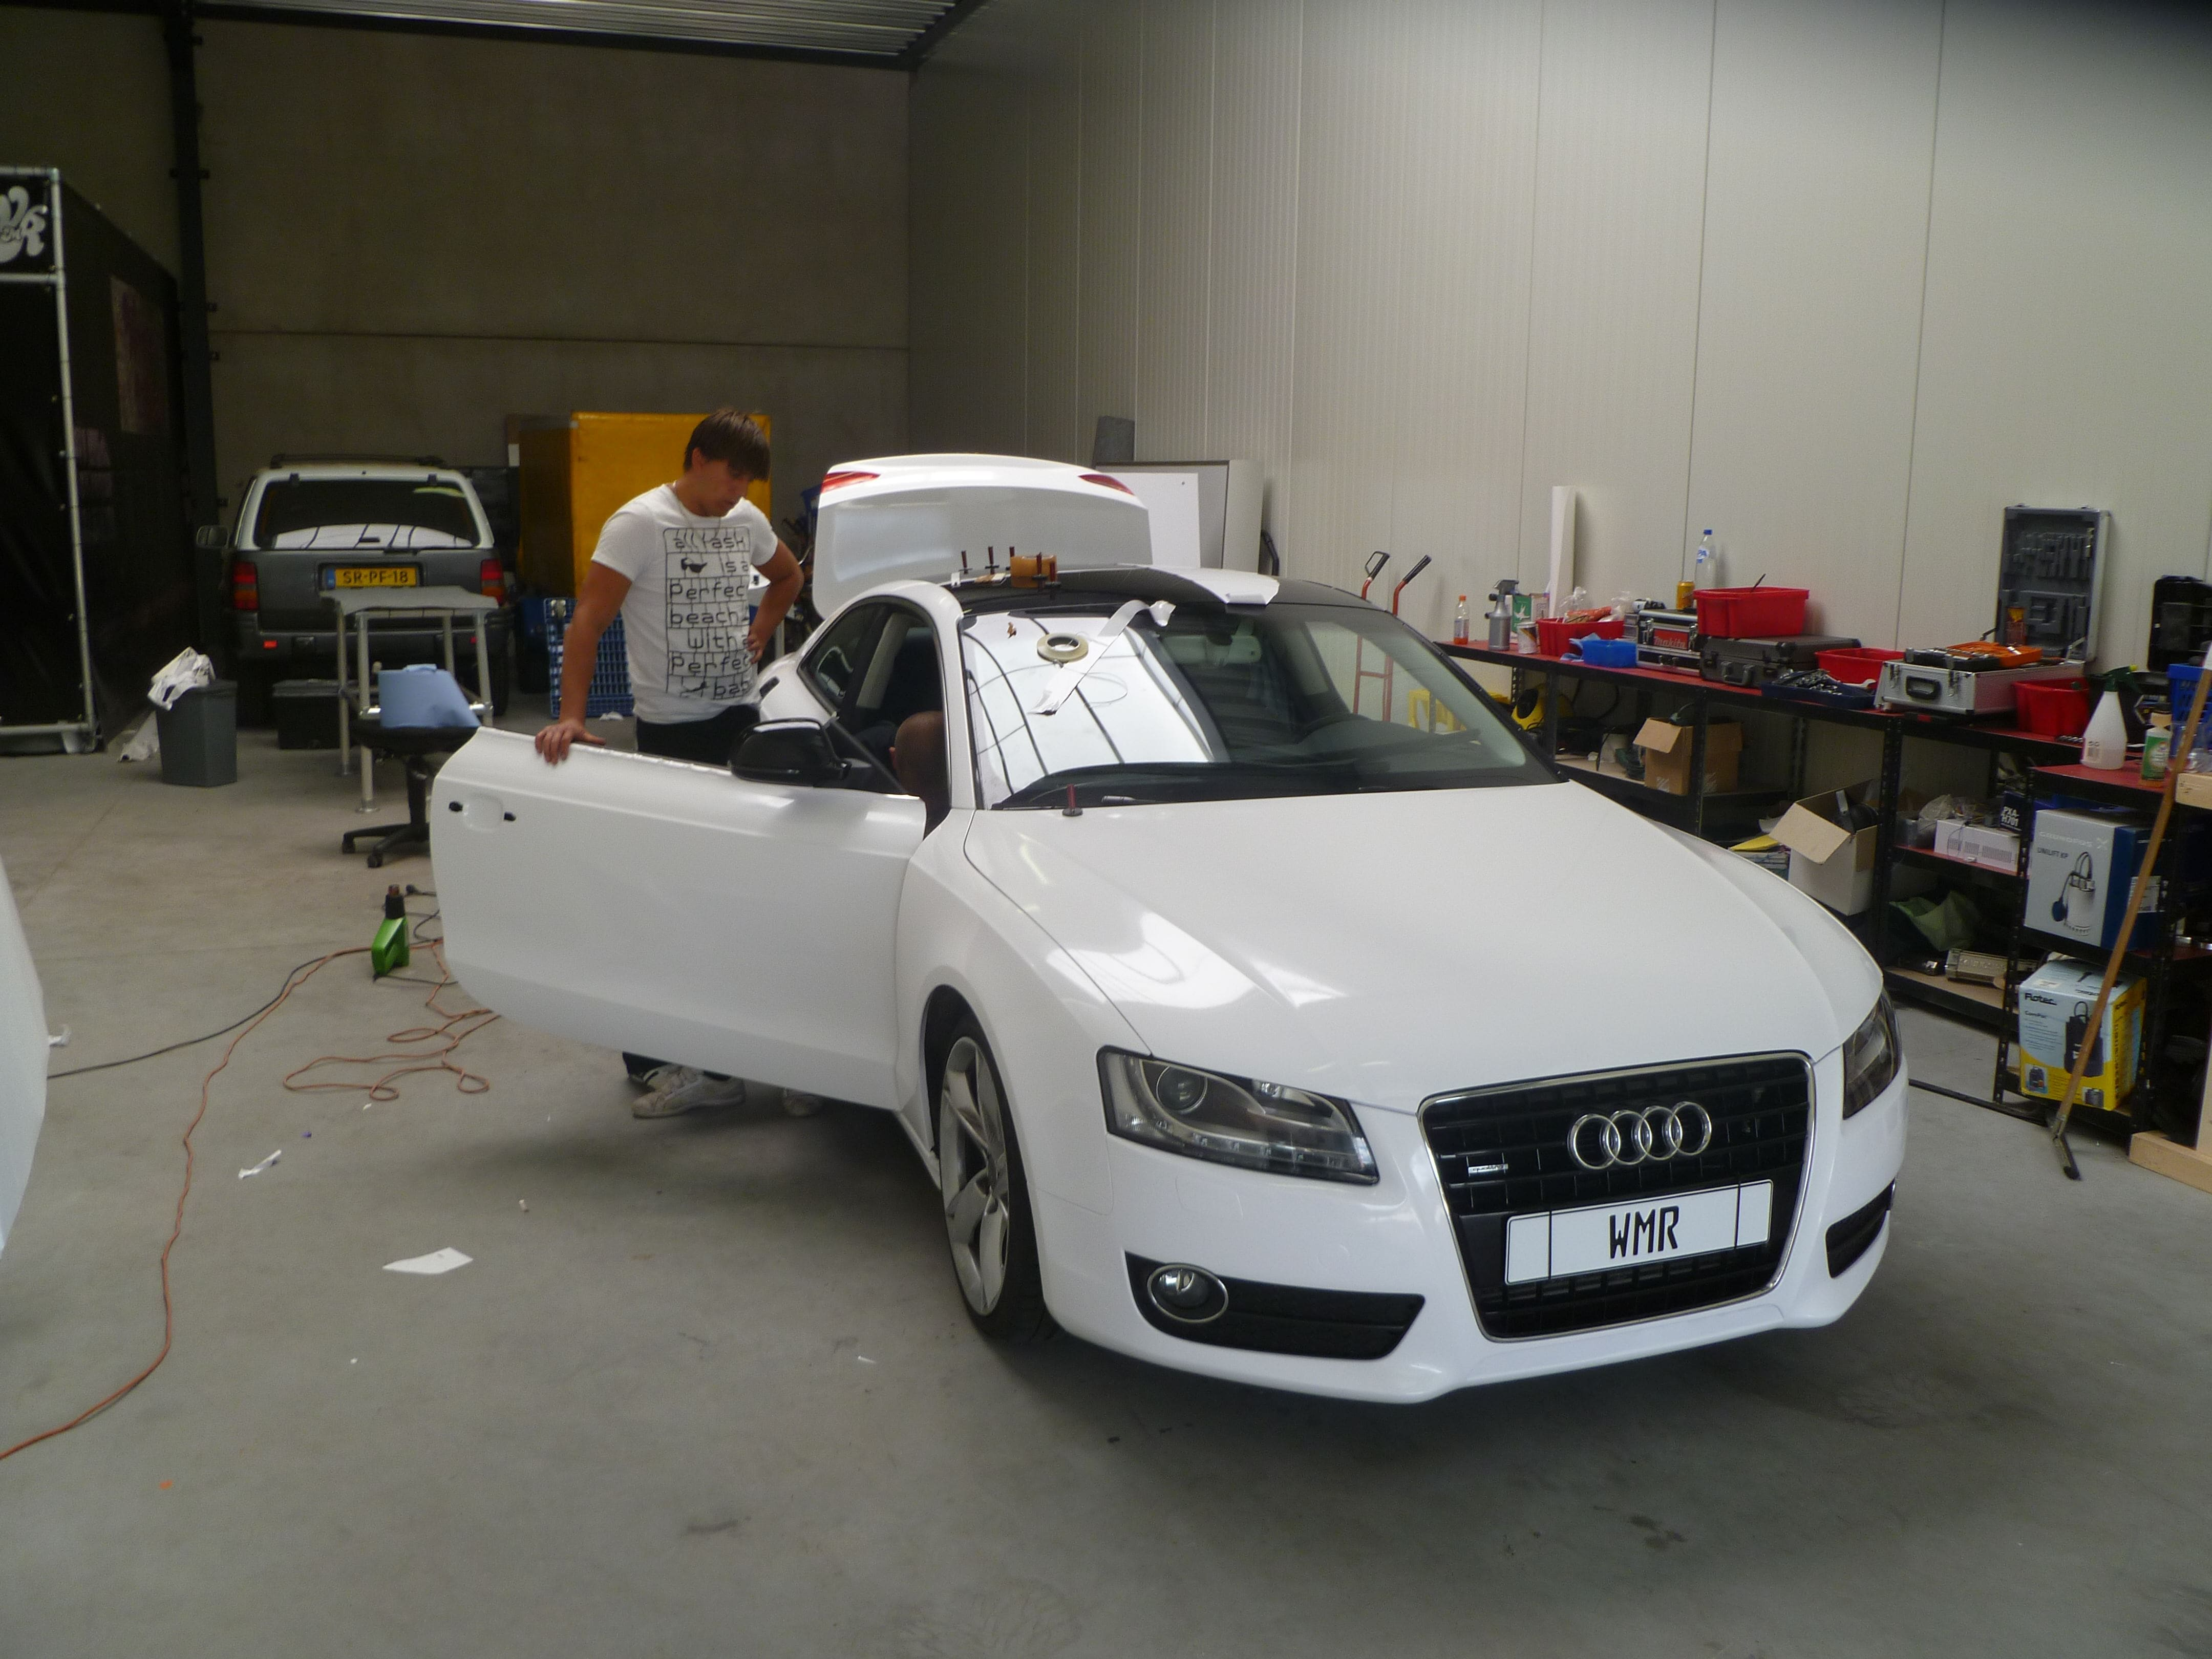 Audi A5 coupe met Metallic Witte Wrap, Carwrapping door Wrapmyride.nu Foto-nr:4718, ©2020